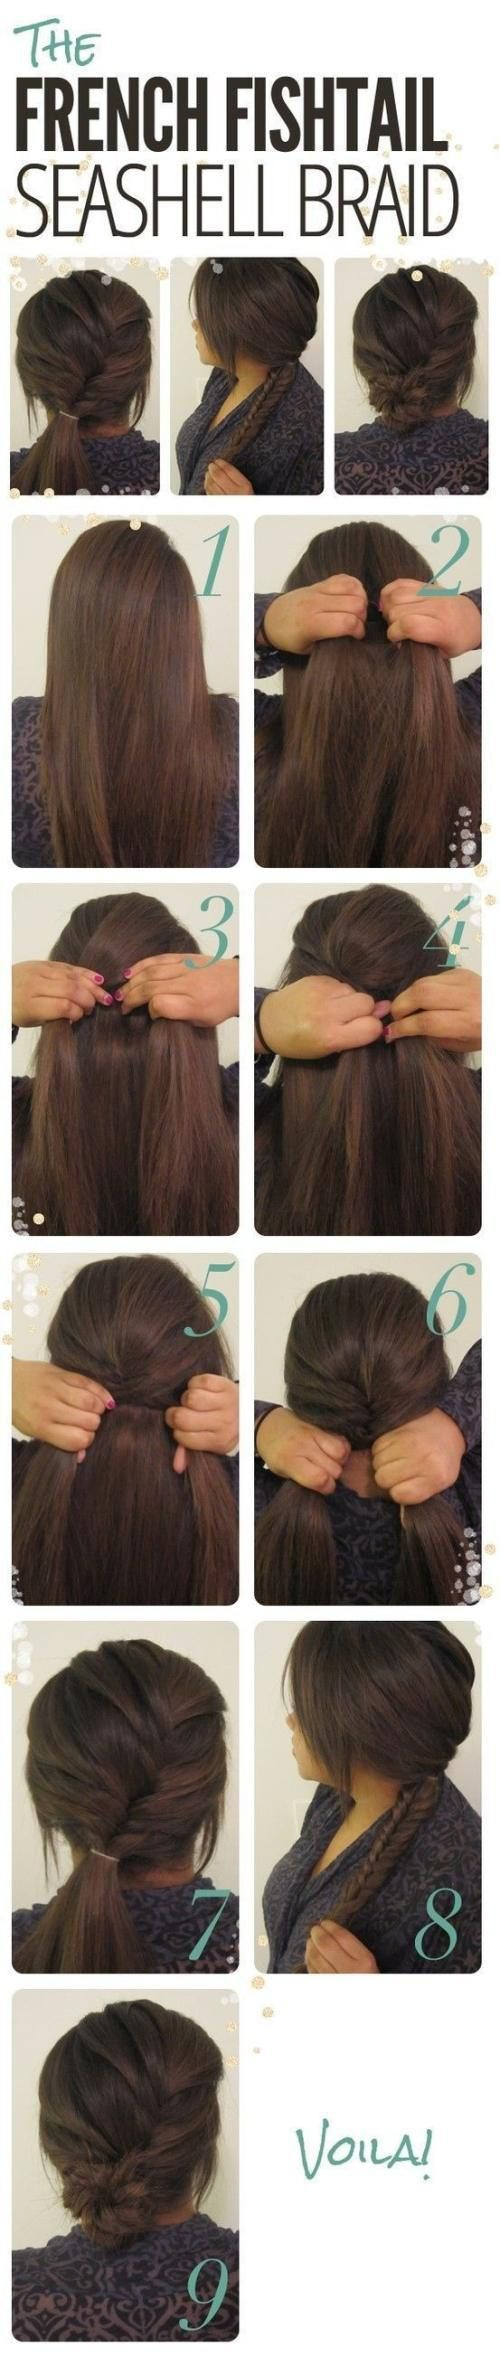 hair styles 6 Do it yourself hairstyles (26 photos)